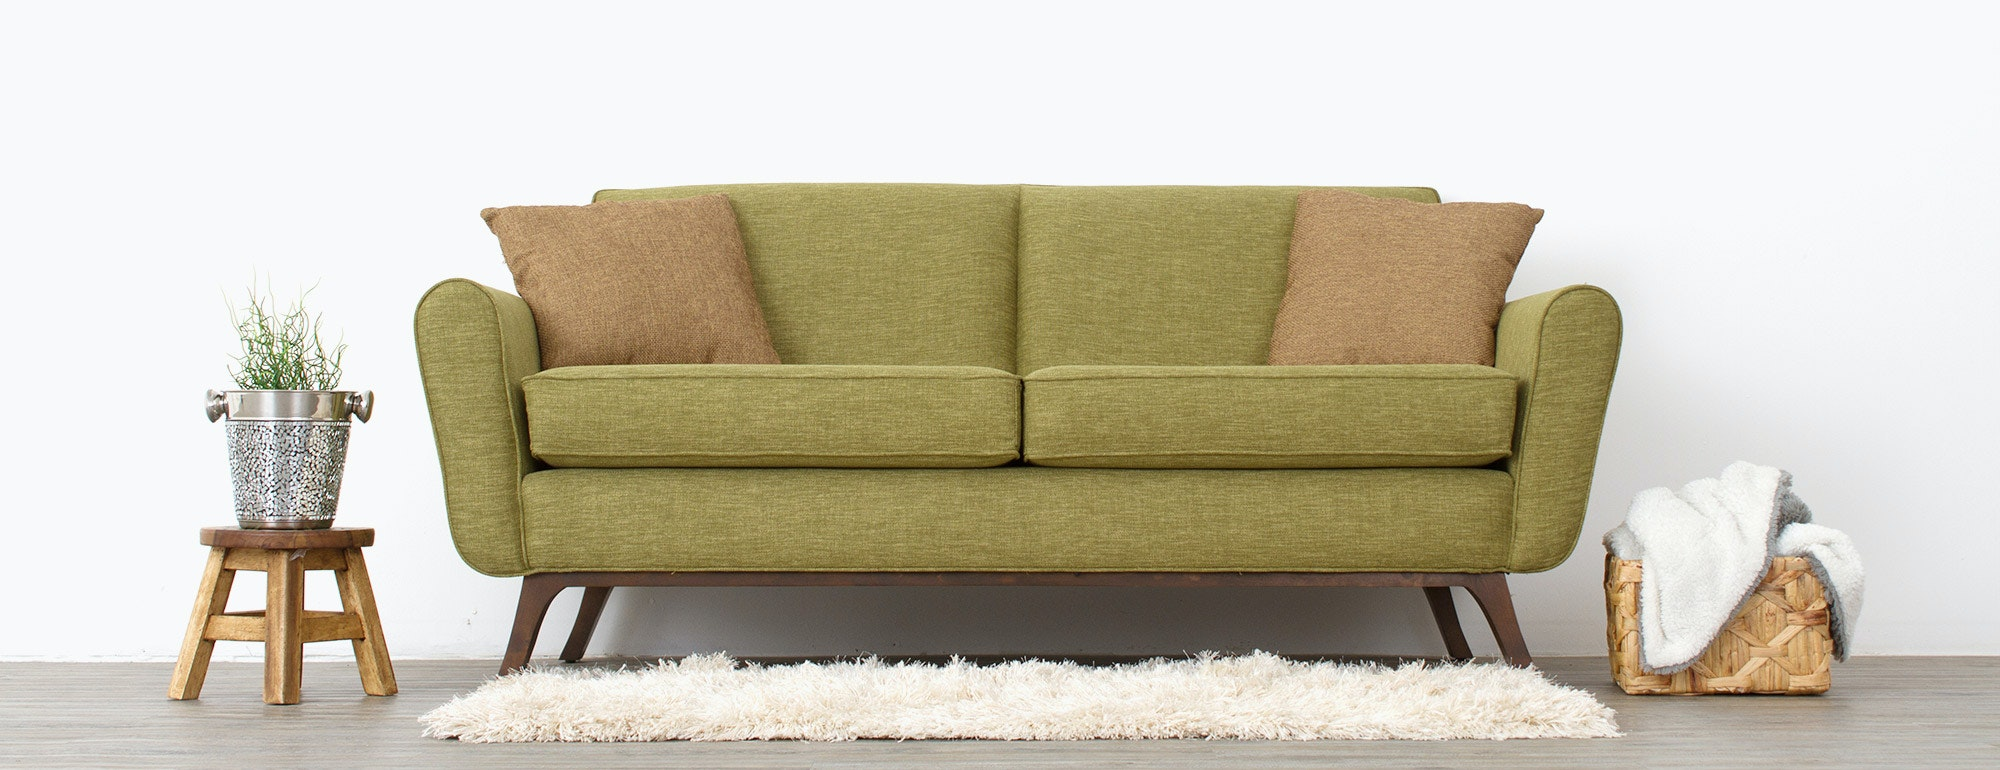 Pleasing Hyland Loveseat Alphanode Cool Chair Designs And Ideas Alphanodeonline